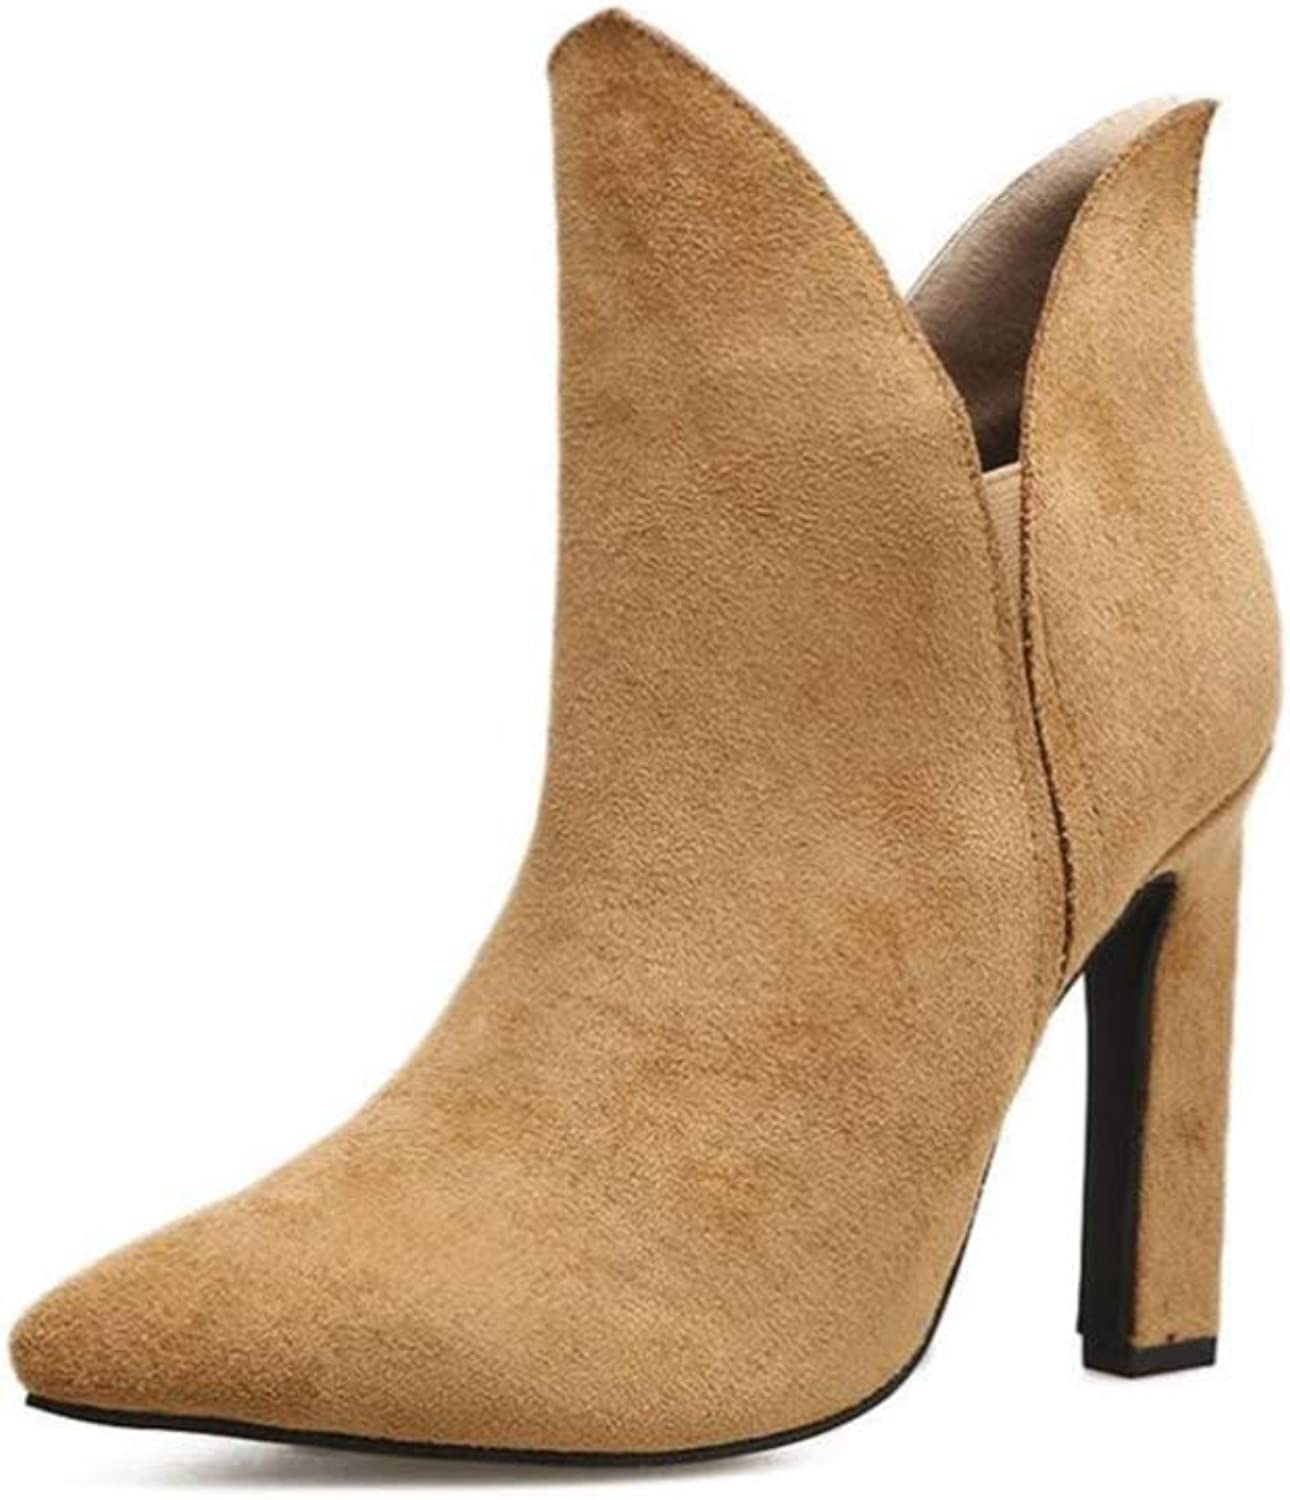 Shiney Women's Boots Heeled Suede Pointed Toe Nubuck Leather Boots Chunky Heel Autumn Winter